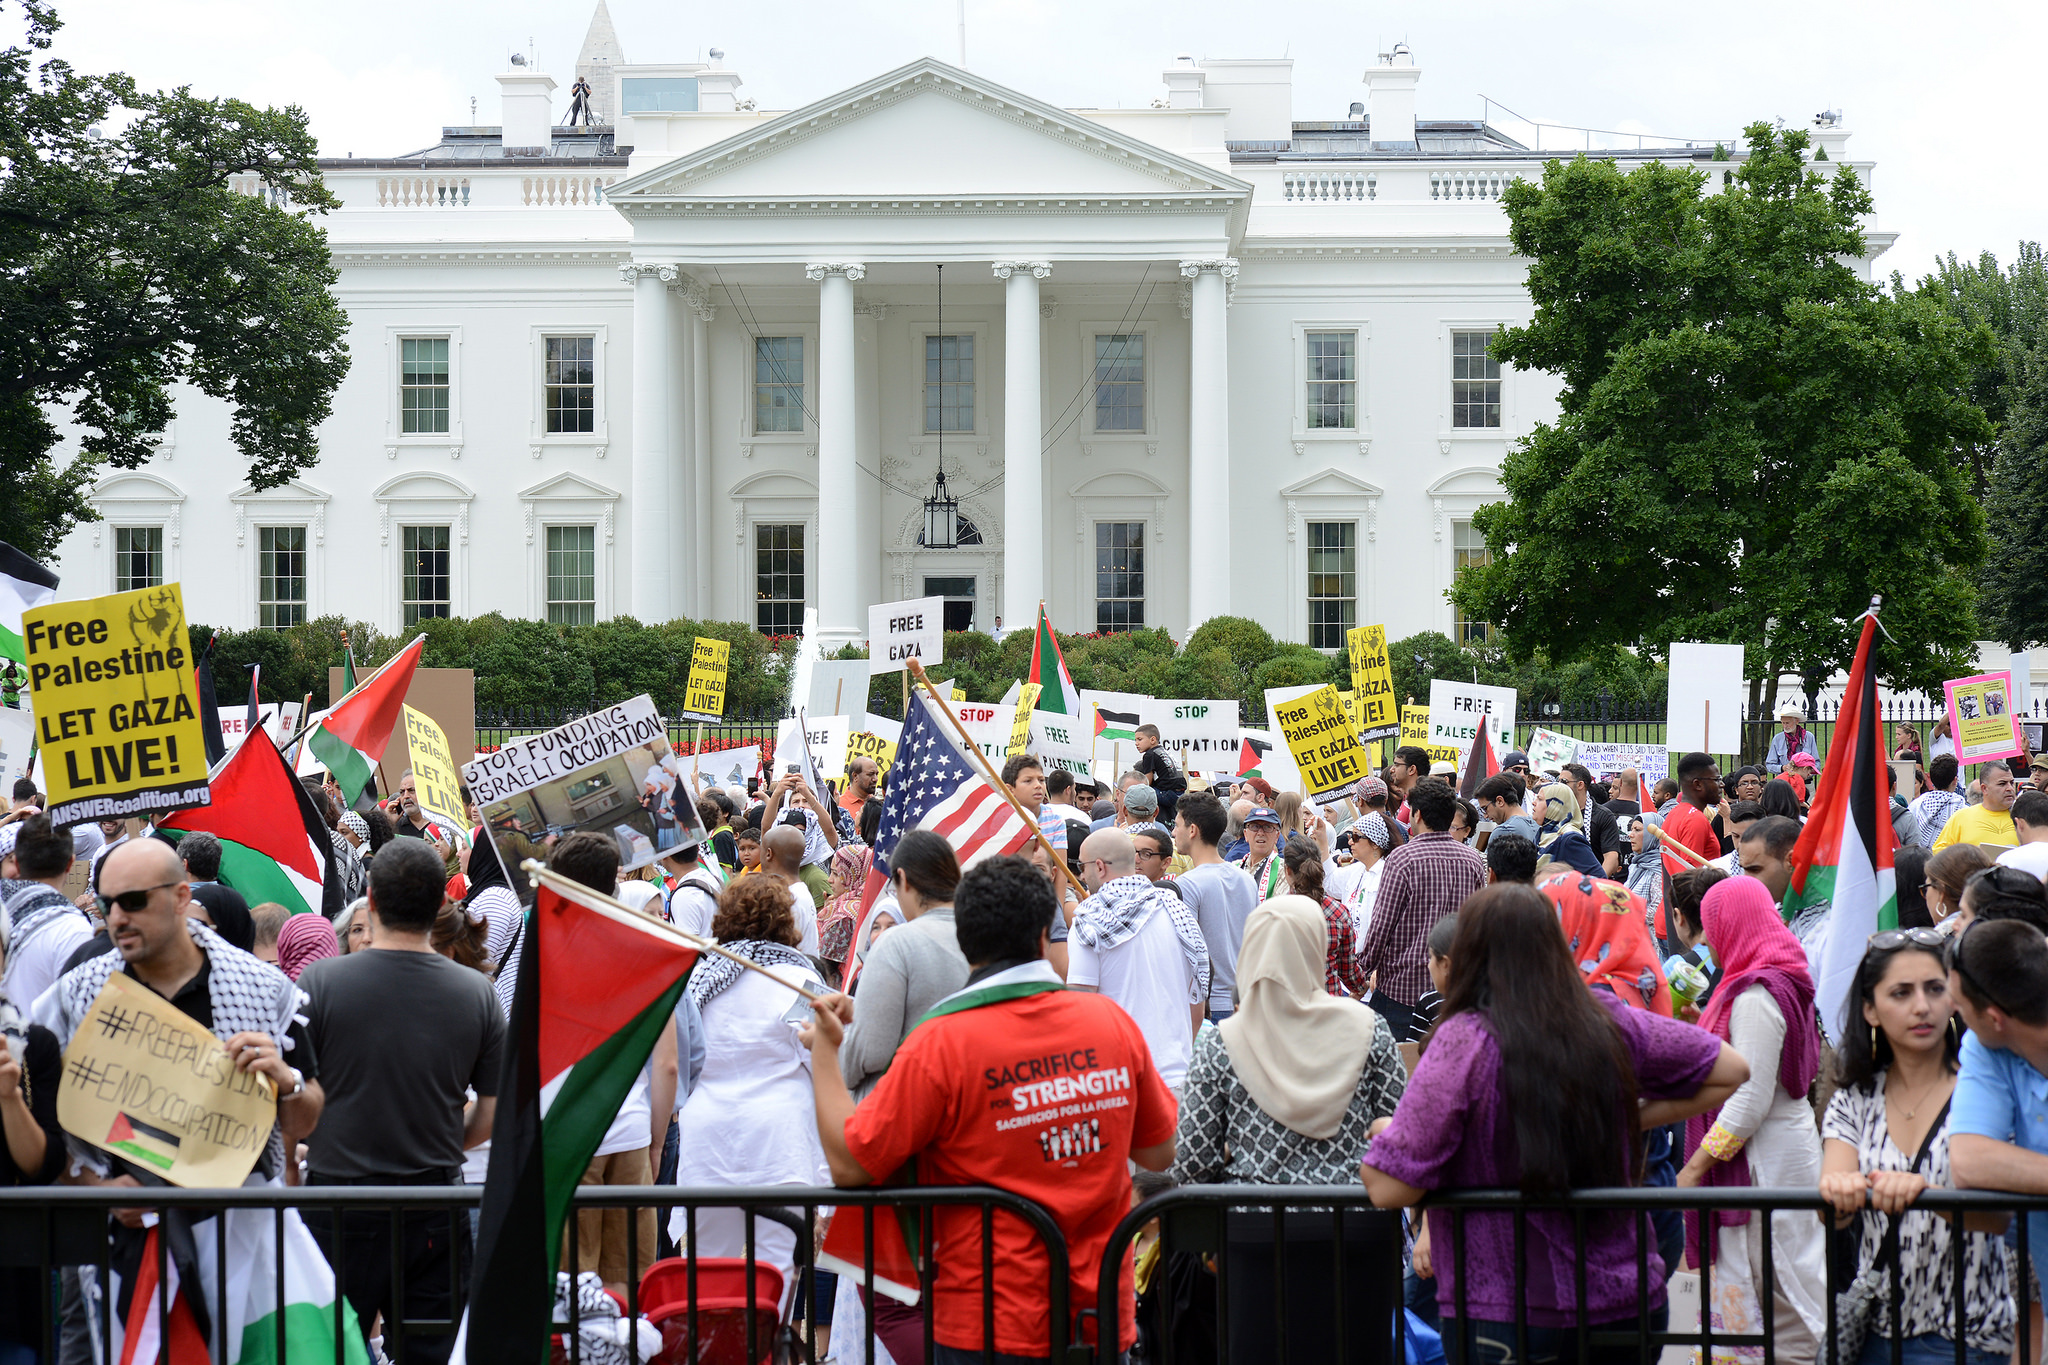 us-american-support-israel-palestine-gaza